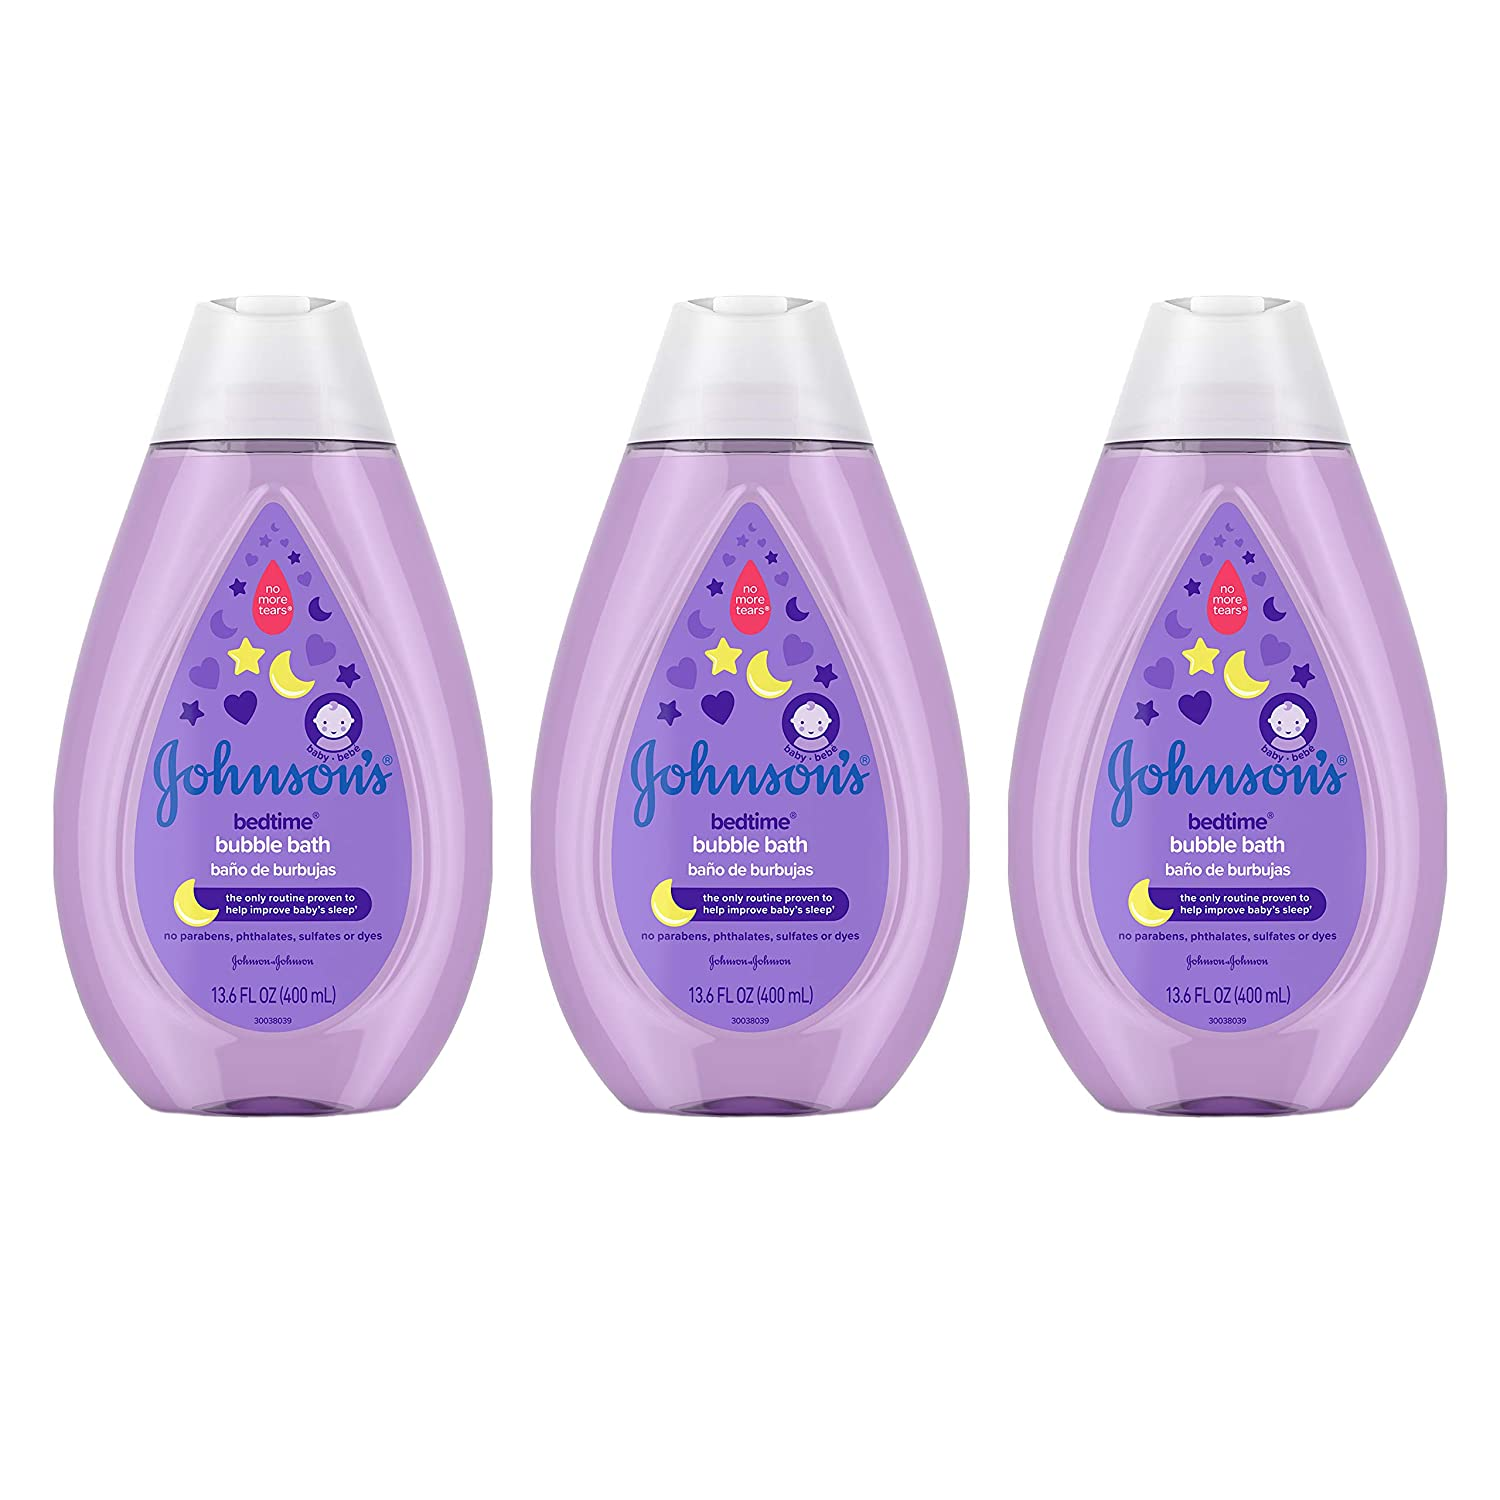 Large special price !! Johnson's Bedtime Limited price sale Baby Bubble Bath NaturalCalm Aromas Hypo with